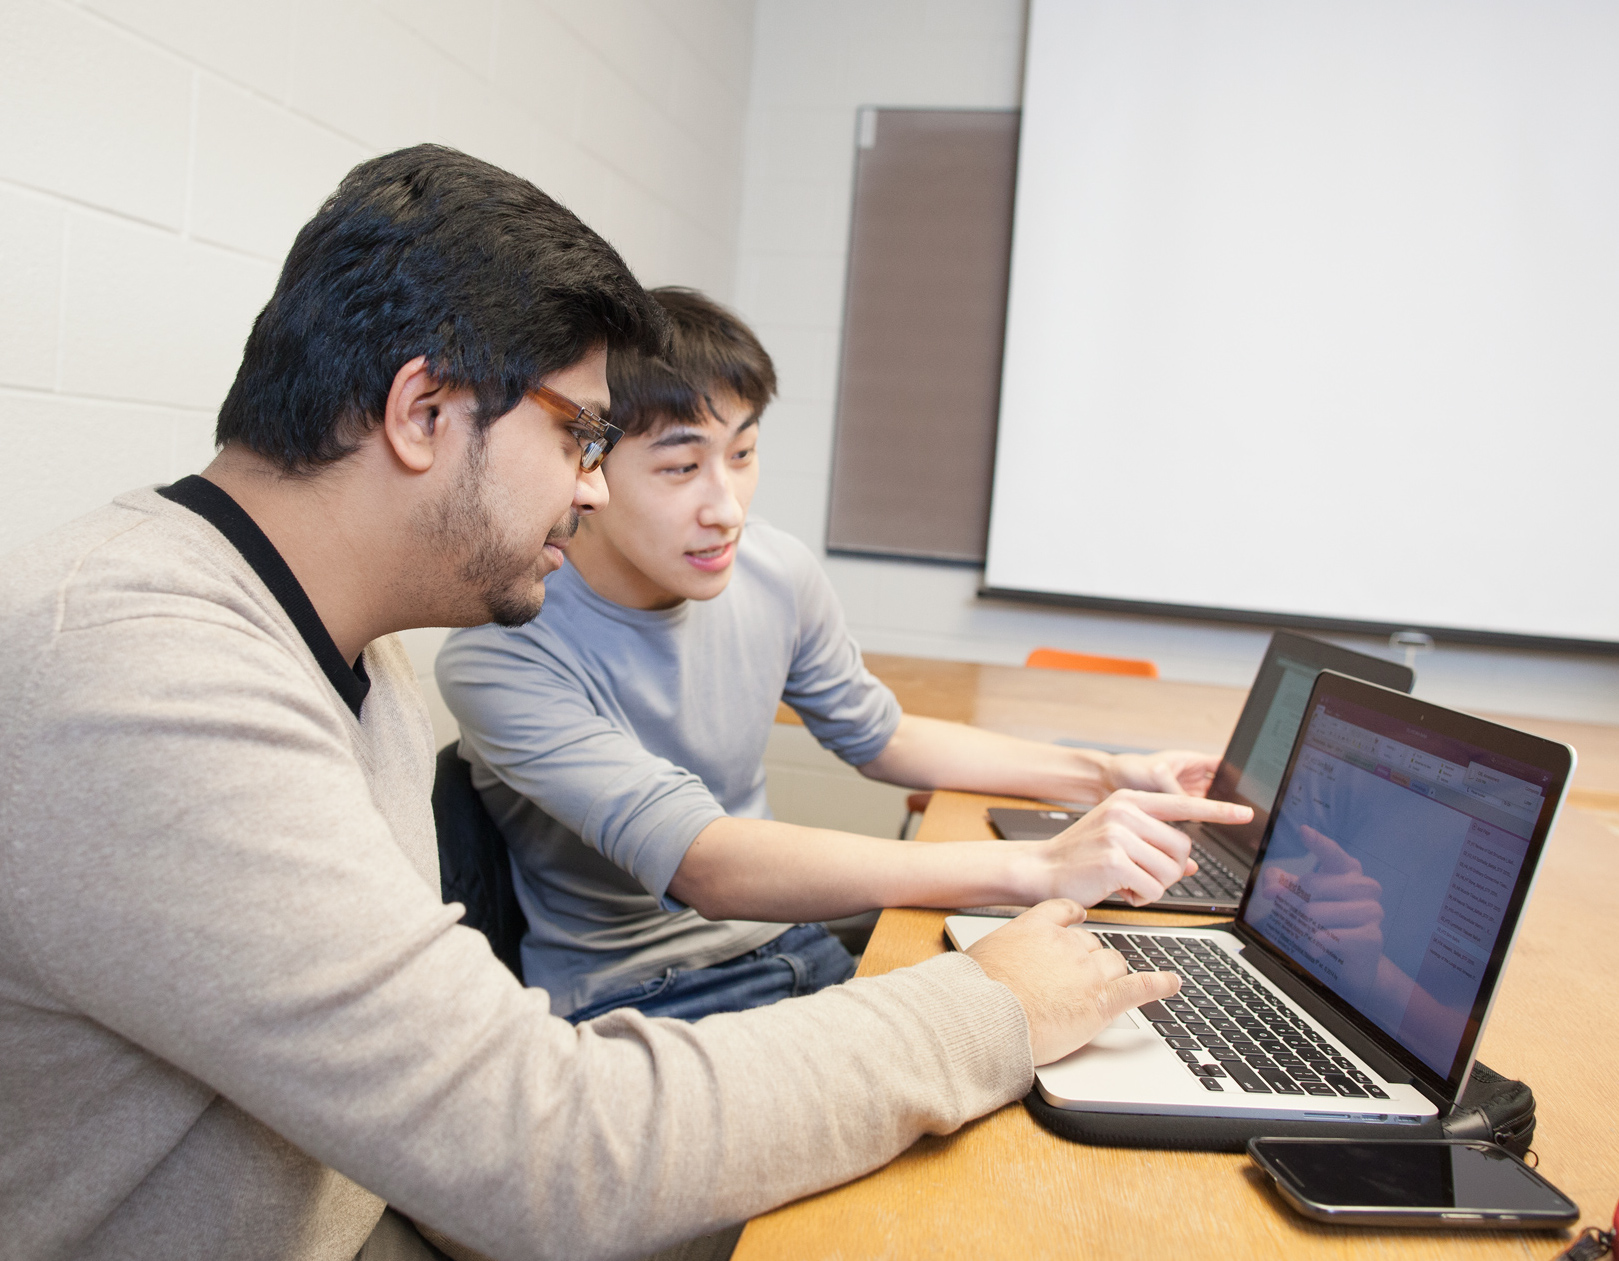 Students having a discussion at a laptop